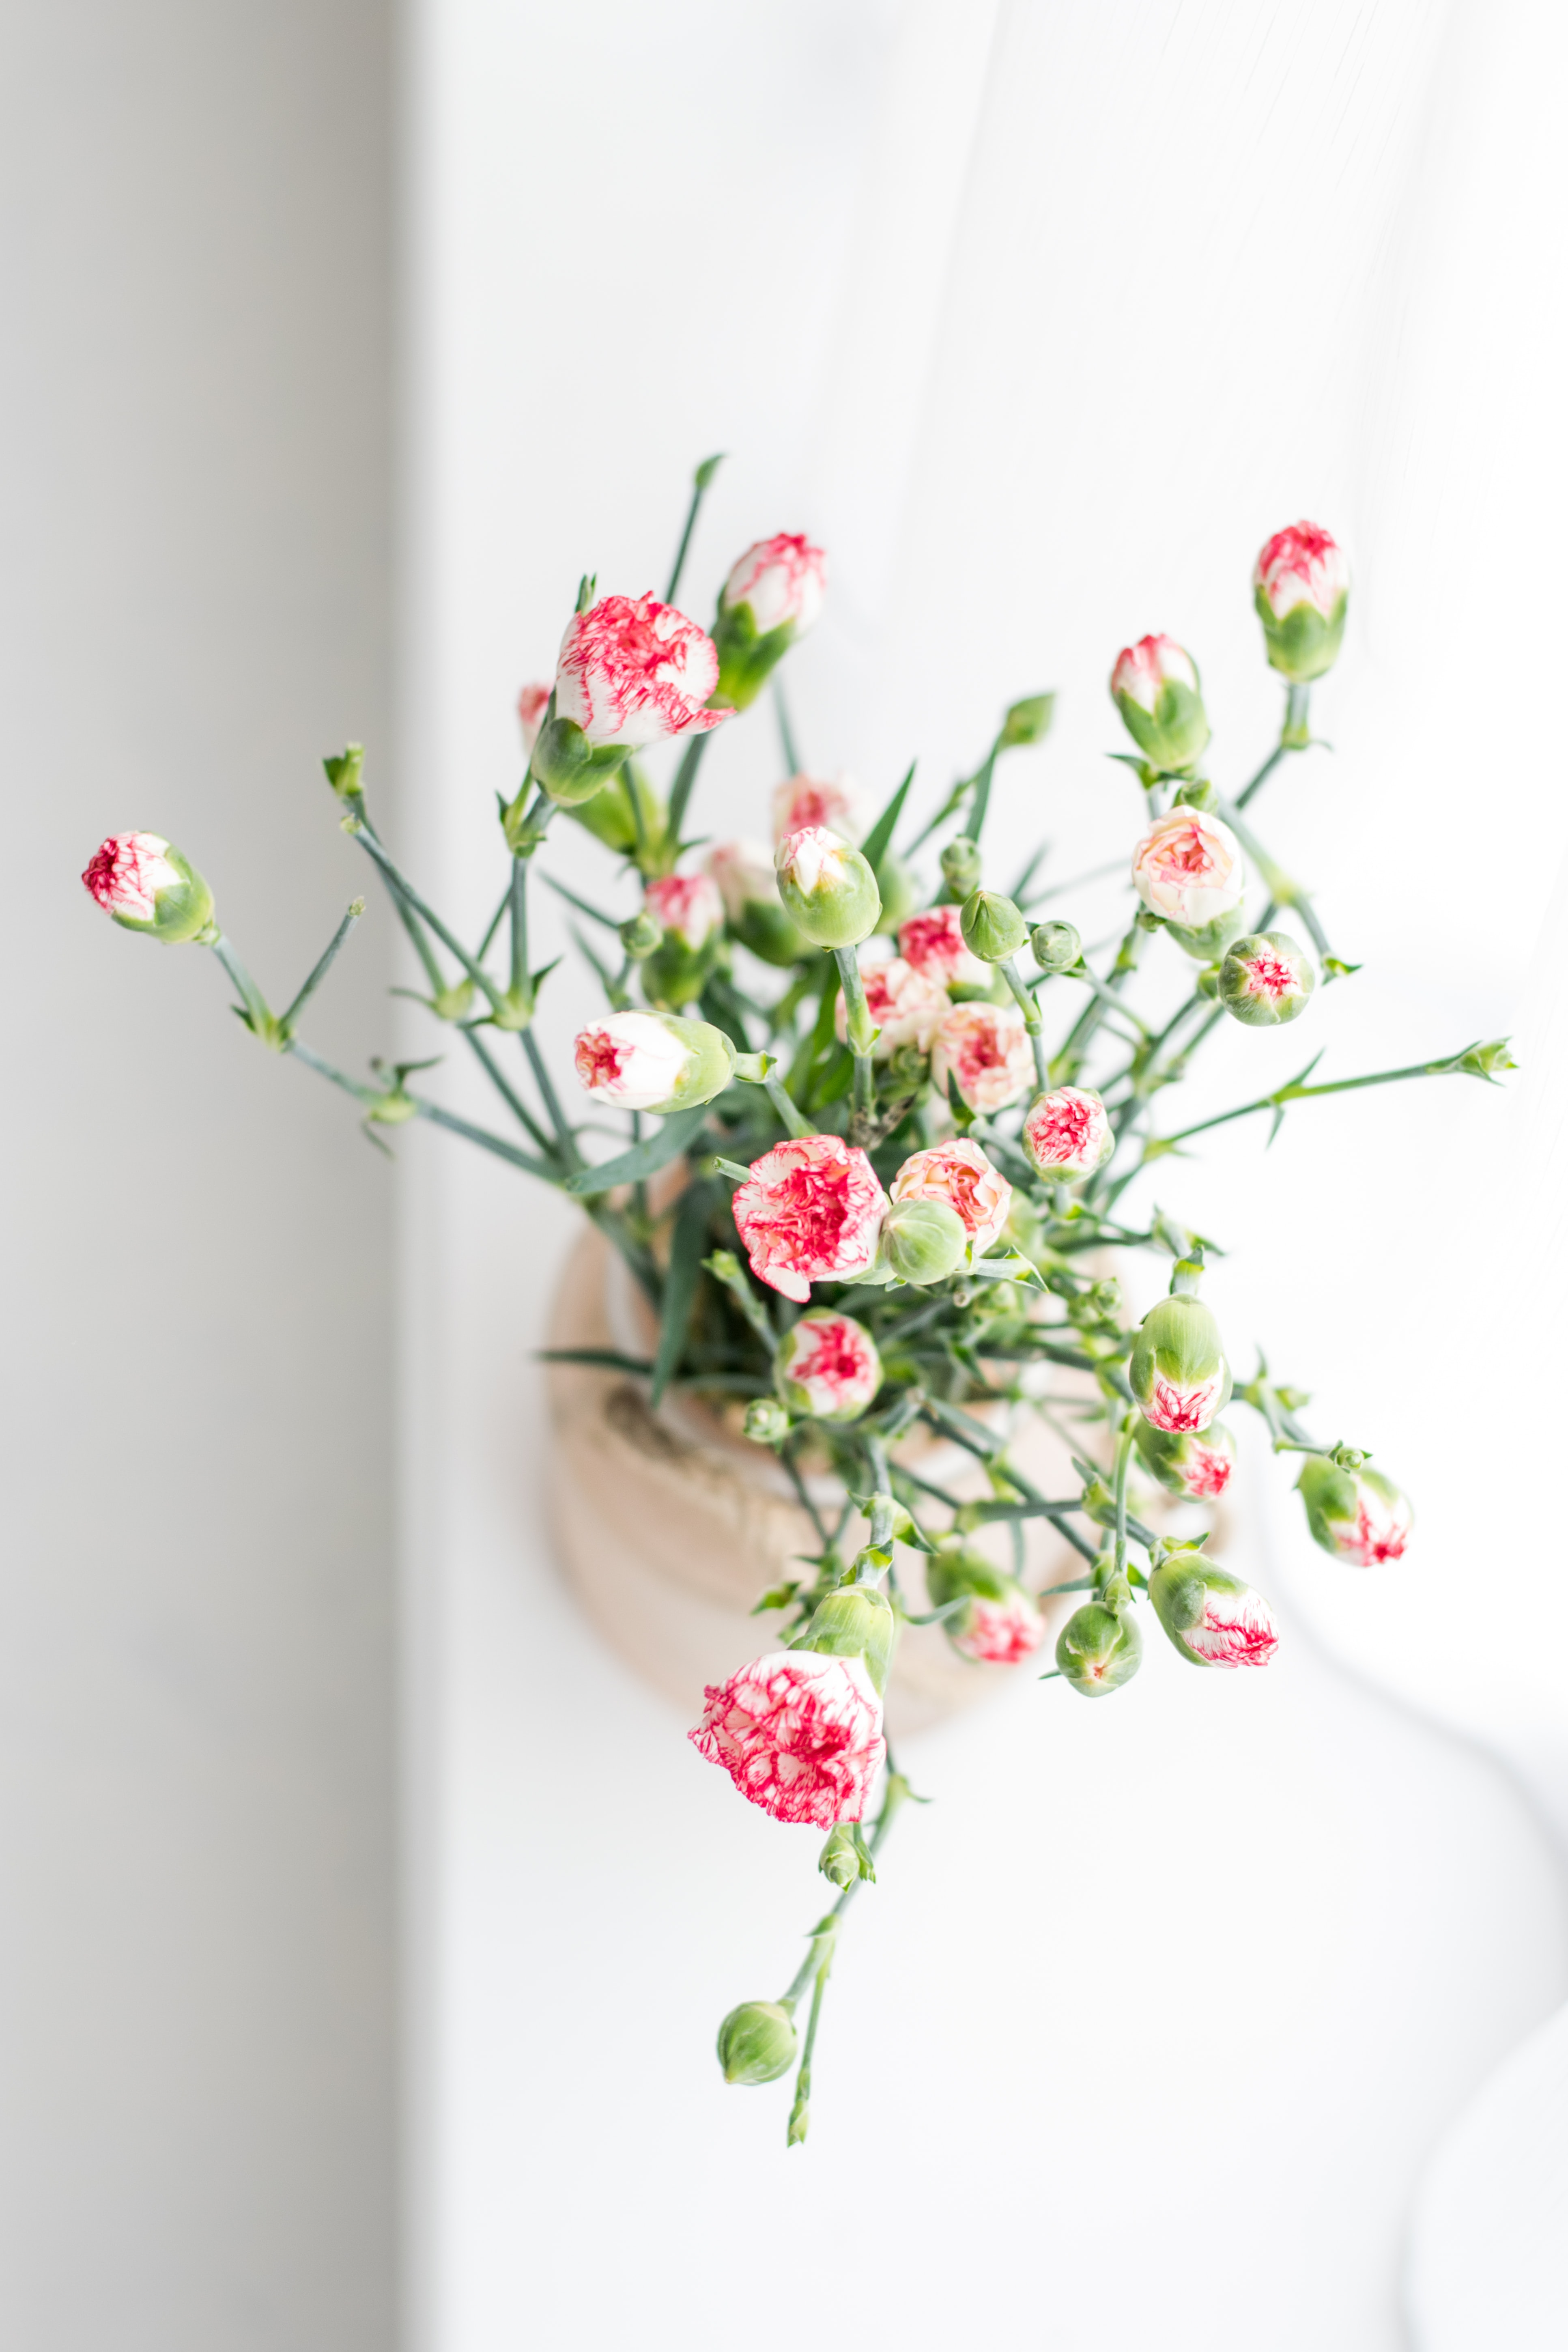 potted pink-and-white petaled flowers